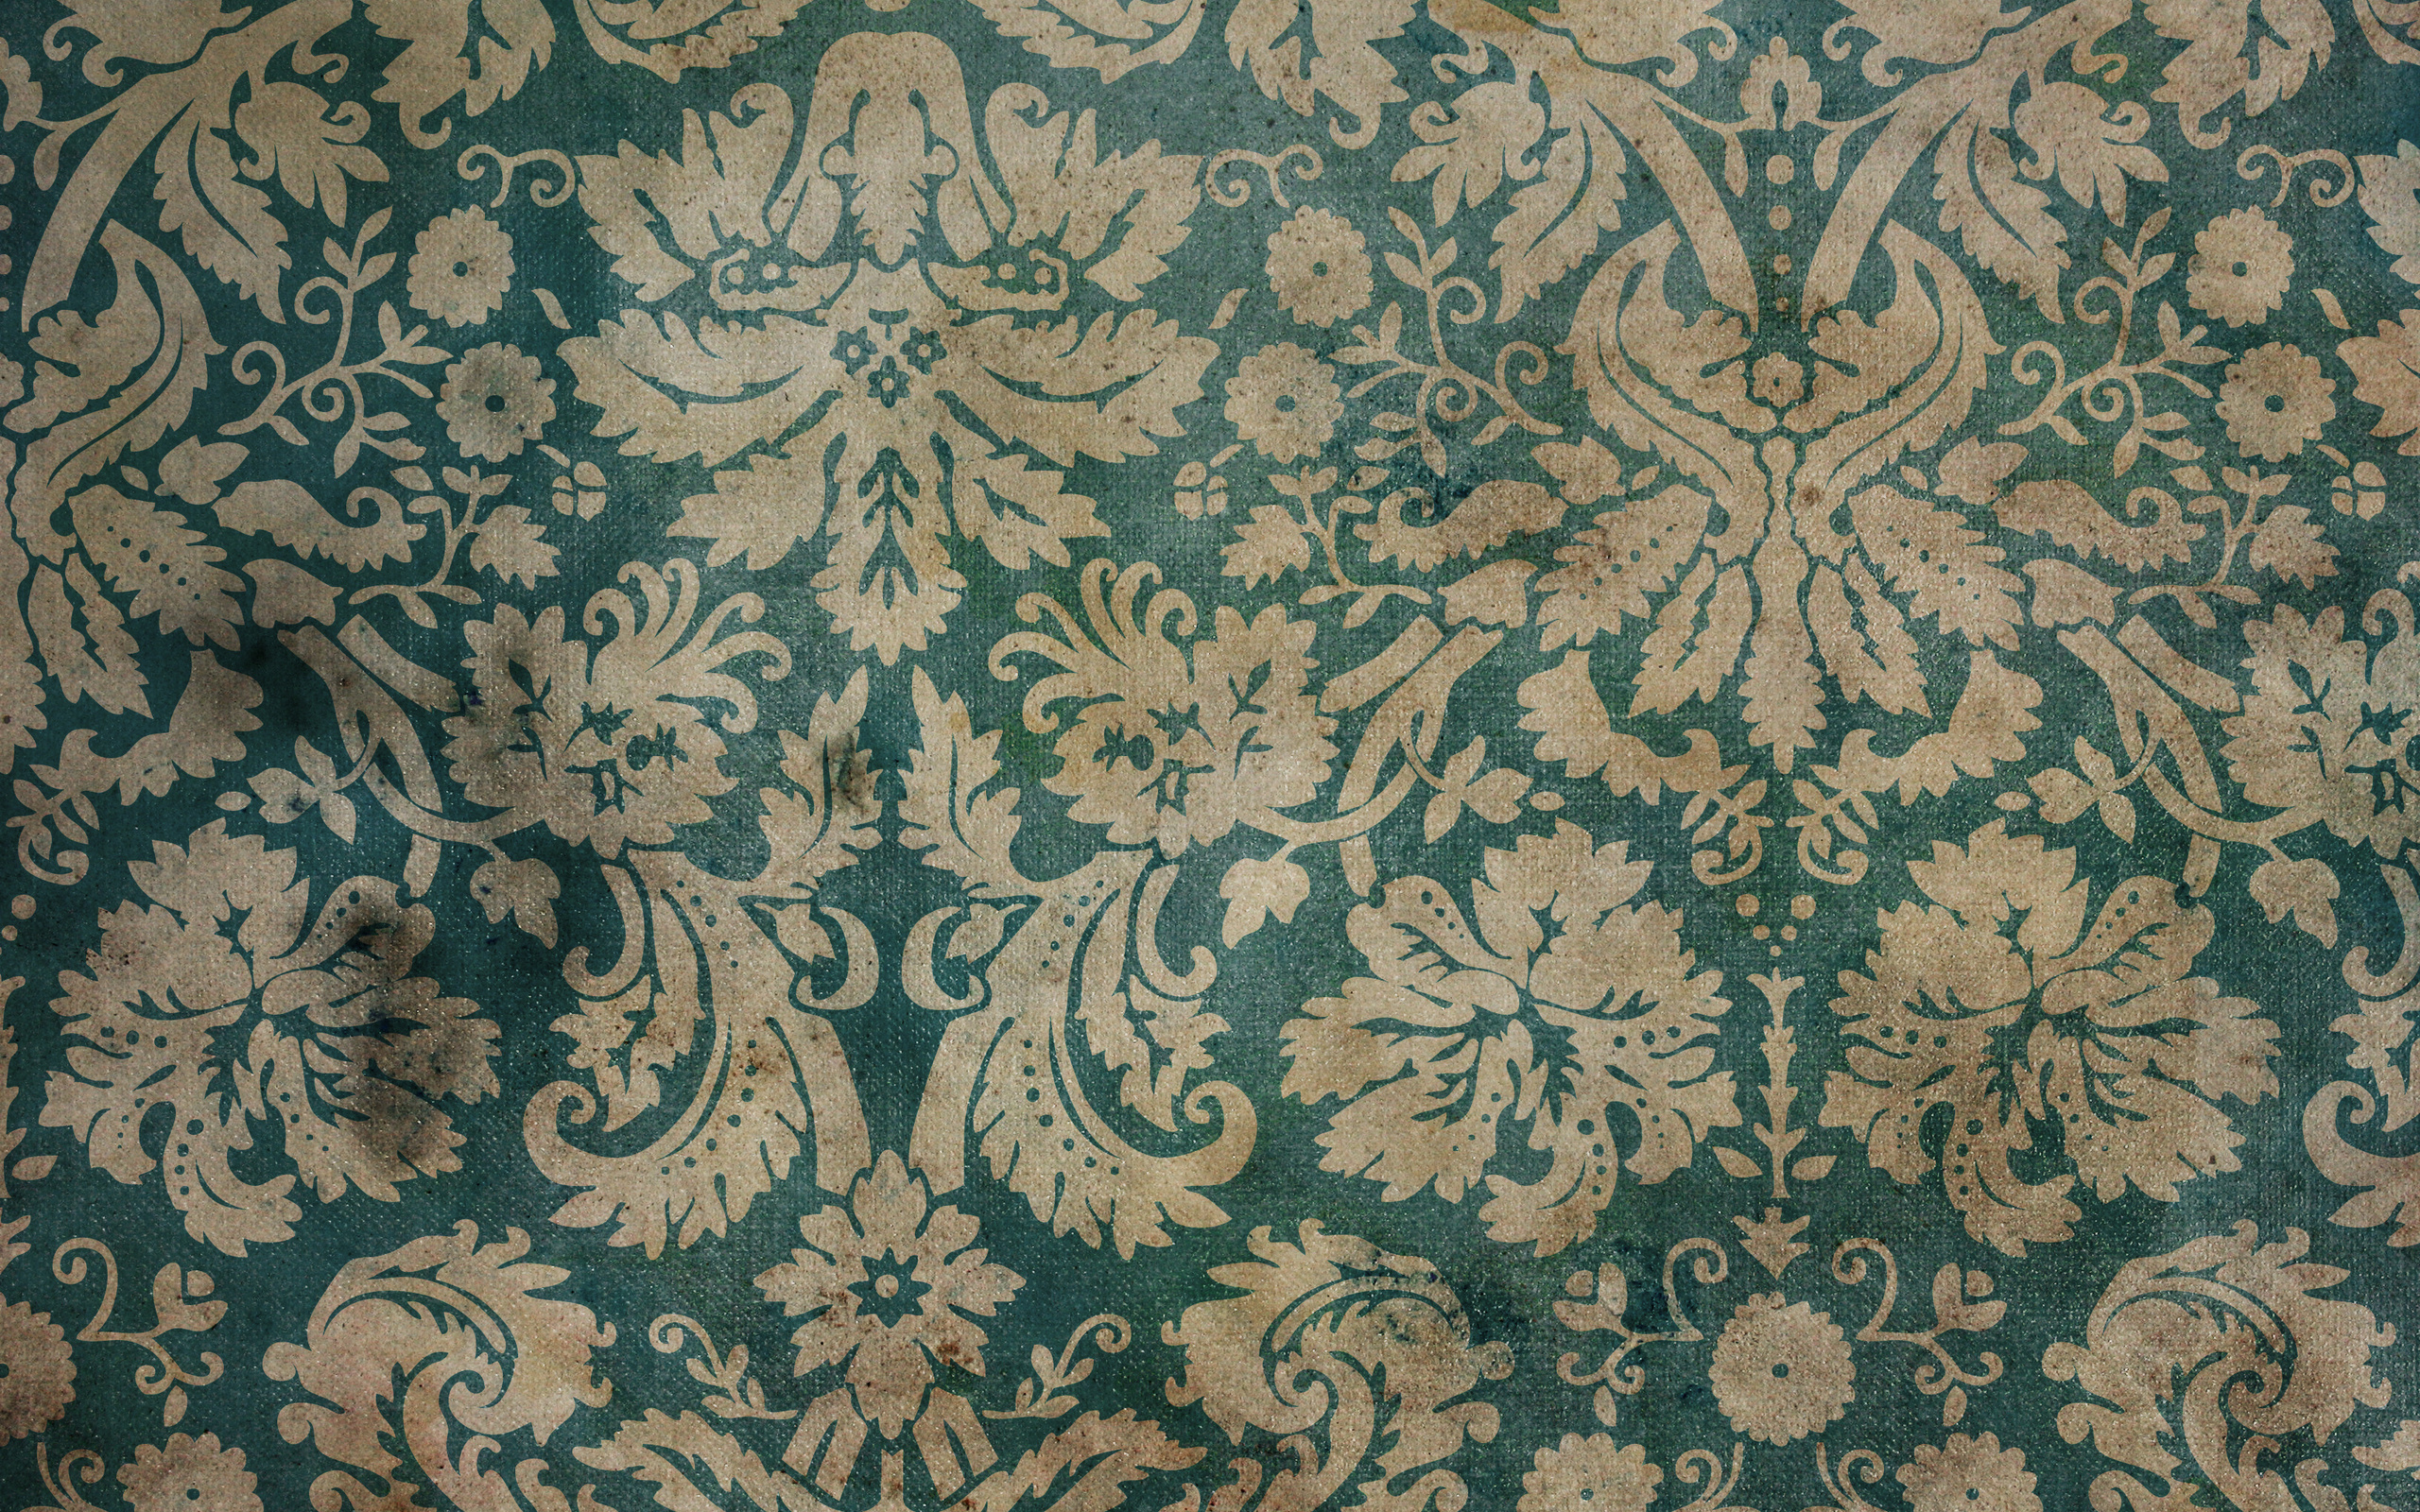 Old Wallpaper Pattern